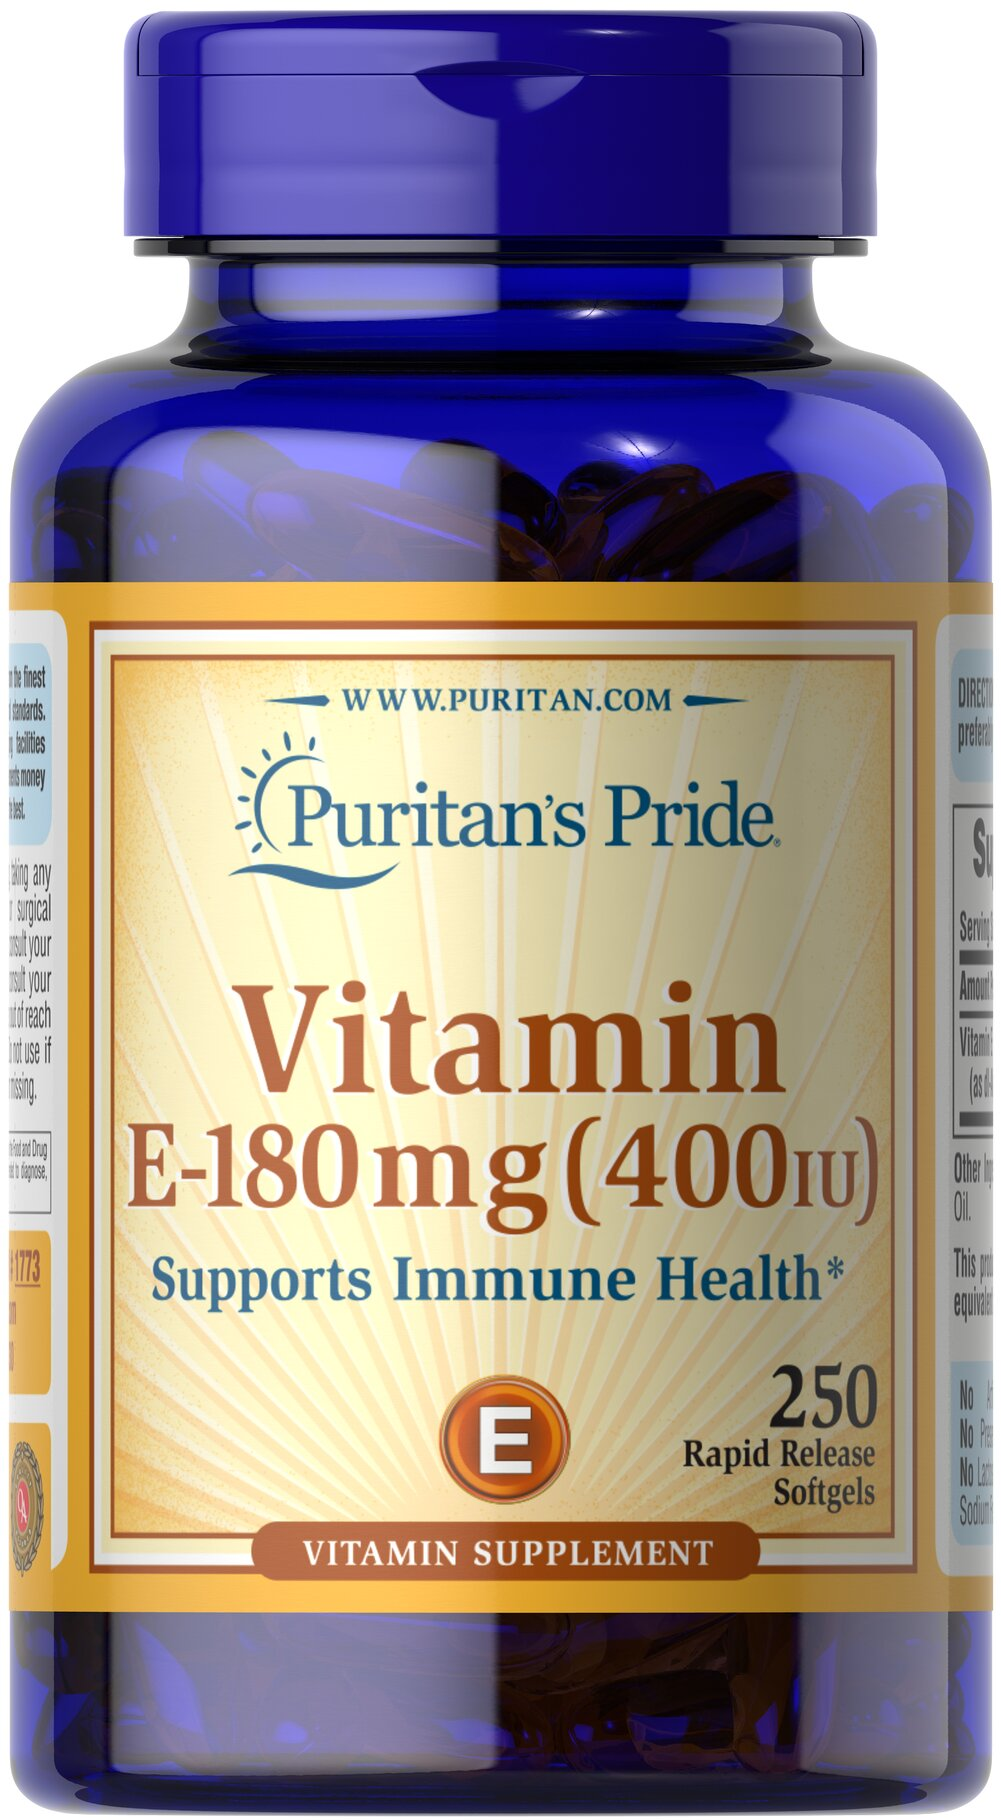 Vitamin E-400 IU <p></p><ul><li>Supports heart and circulatory health**<br /></li><li>Supports antioxidant health**<br /></li><li>Contributes to healthy skin and immune function**<br /><br />Our Vitamin E supplement features dl-Alpha Vitamin E, a synthetic form of Vitamin E. Vitamin E is a potent antioxidant that helps fight free radicals.** Oxidative stress caused by free radicals may contribute to the premature aging of ce